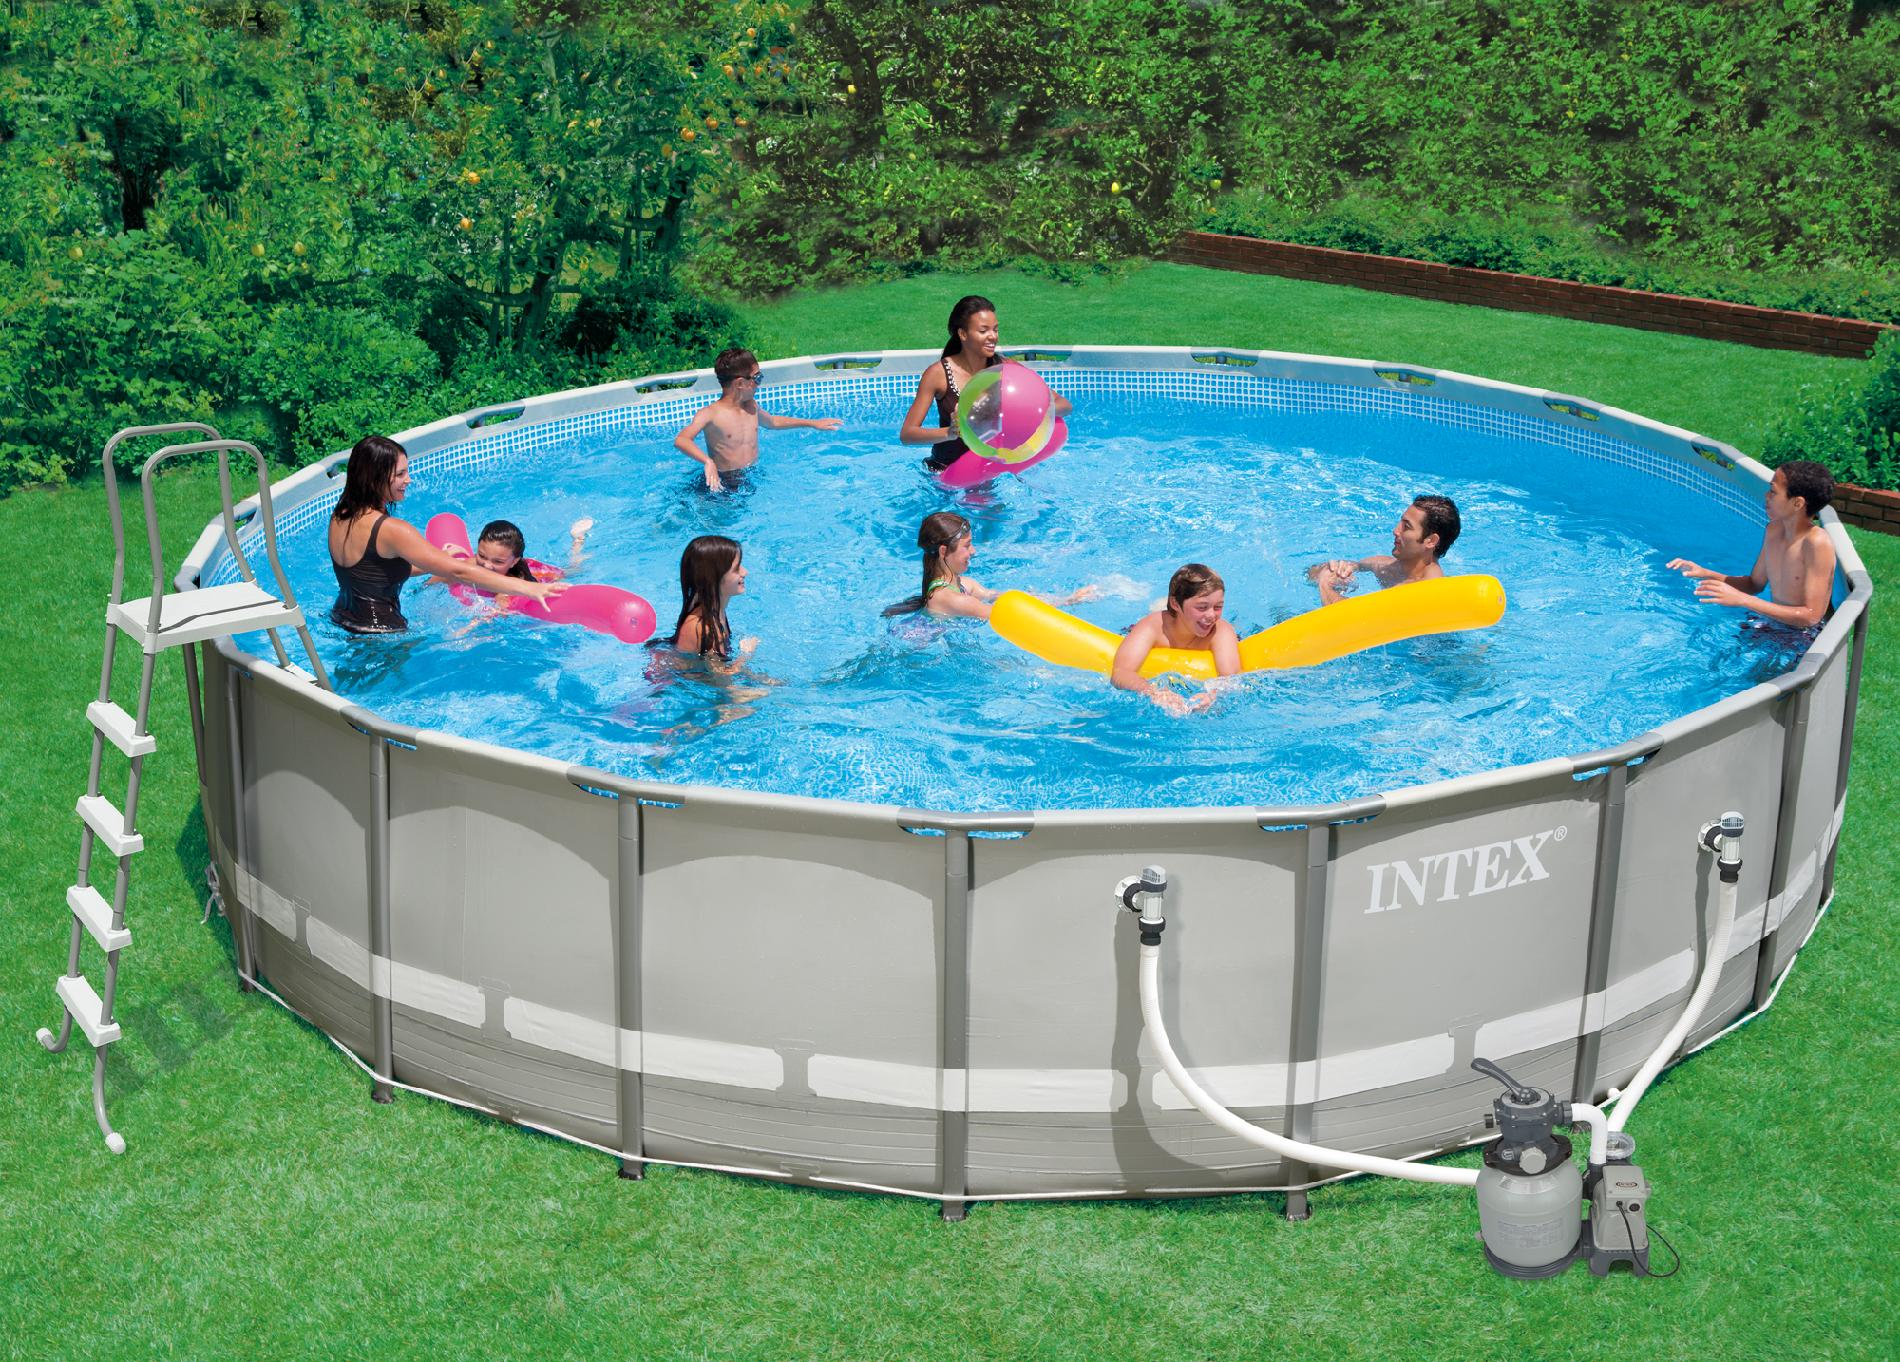 Frame Pool Rund 300 X 100 Adripelayo354 14 Ft Intex Pool Images